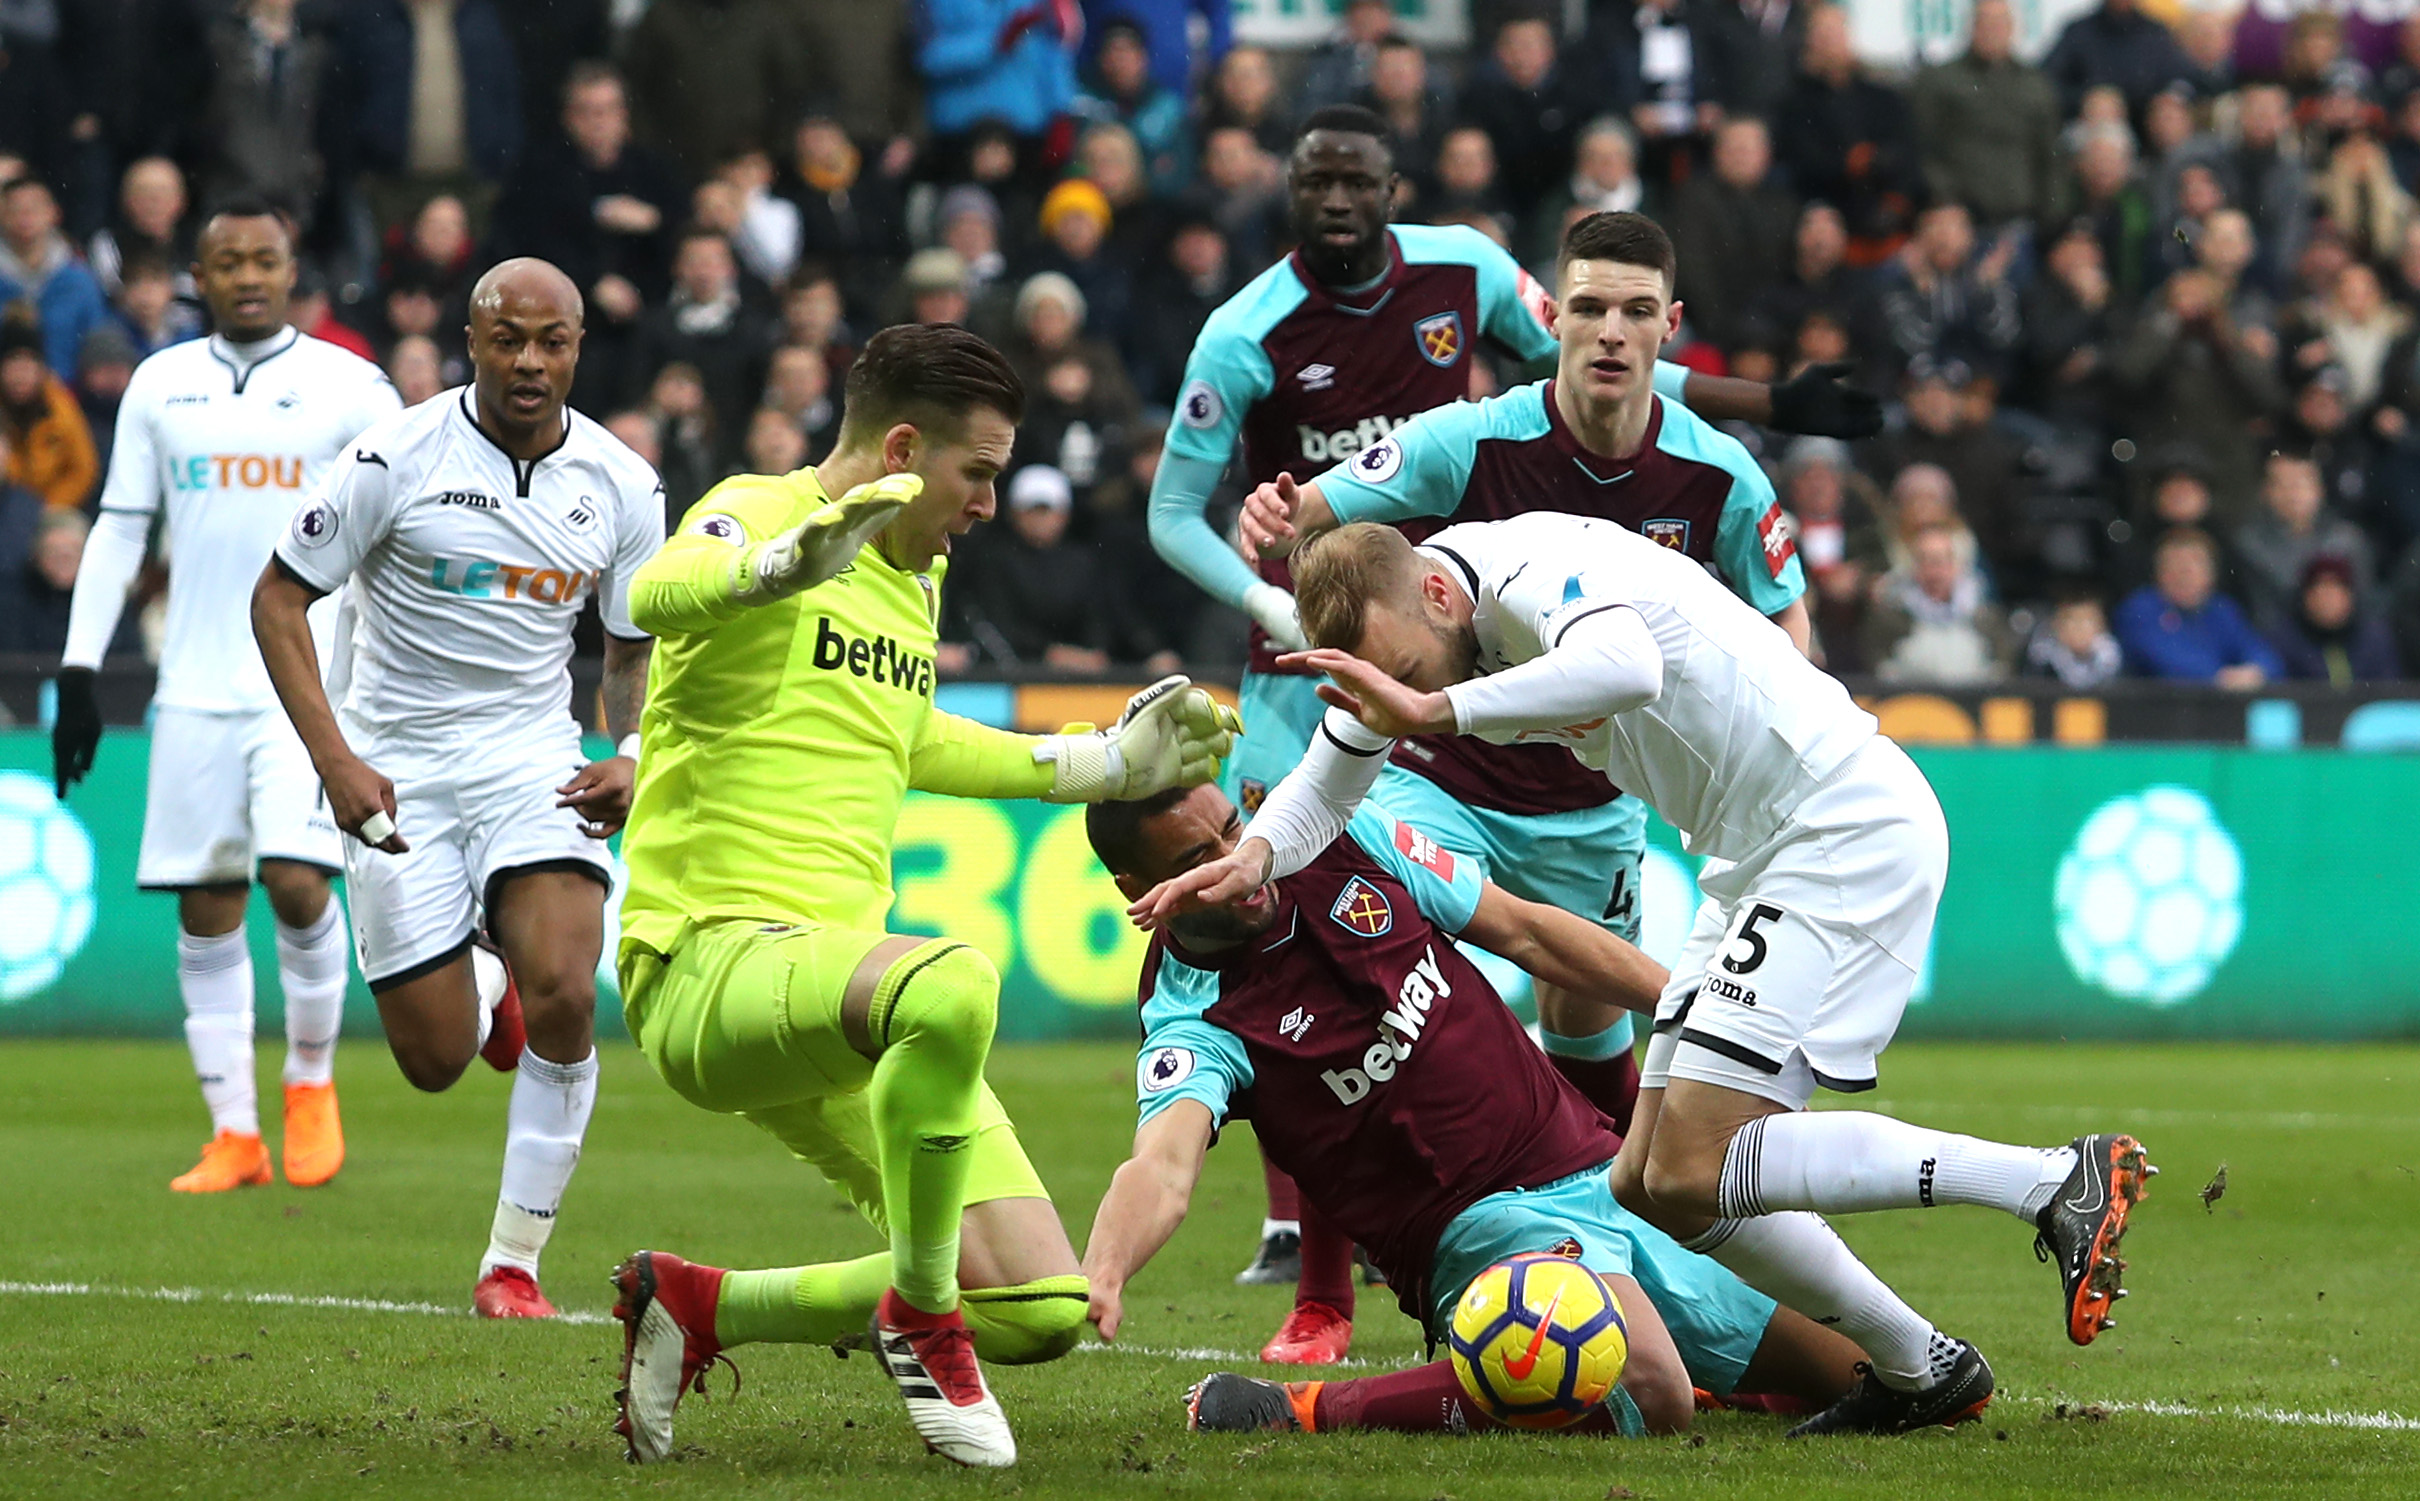 West Ham's Winston Reid to miss rest of season